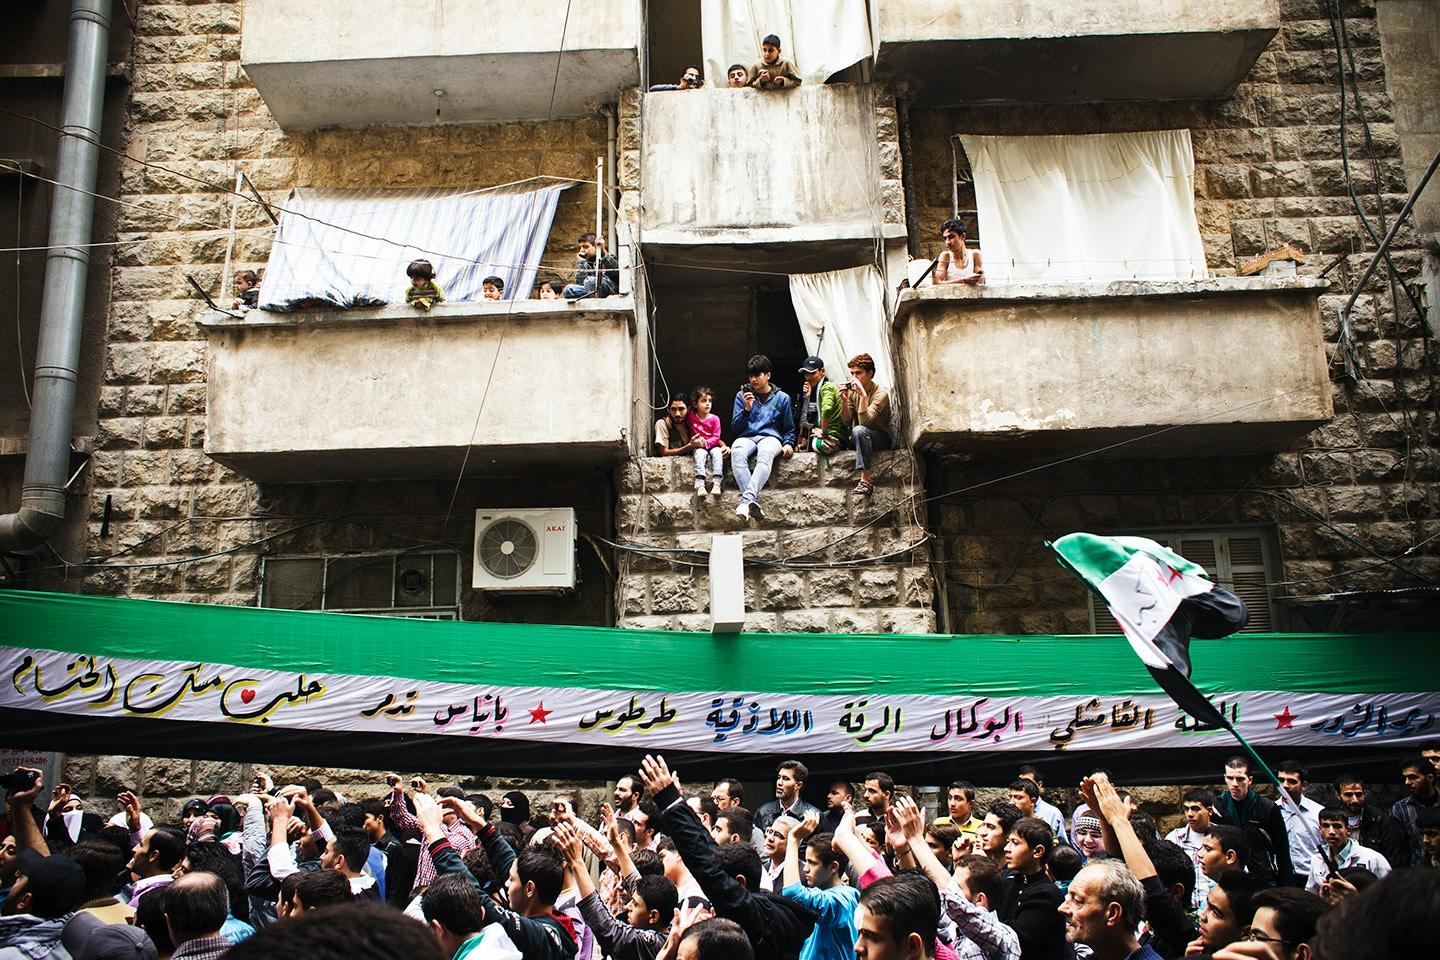 Syrian protesters gather in demonstration against the regime in the Bustan al-Qasr neighbourhood of the northern city of Aleppo on November 9, 2012. Syria President Bashar al-Assad said his future could only be decided at the ballot box and denied Syria was in a state of civil war, despite fresh attacks and heavy fighting near the Turkish border. AFP PHOTO/ACHILLEAS ZAVALLIS        (Photo credit should read ACHILLEAS ZAVALLIS/AFP/Getty Images)